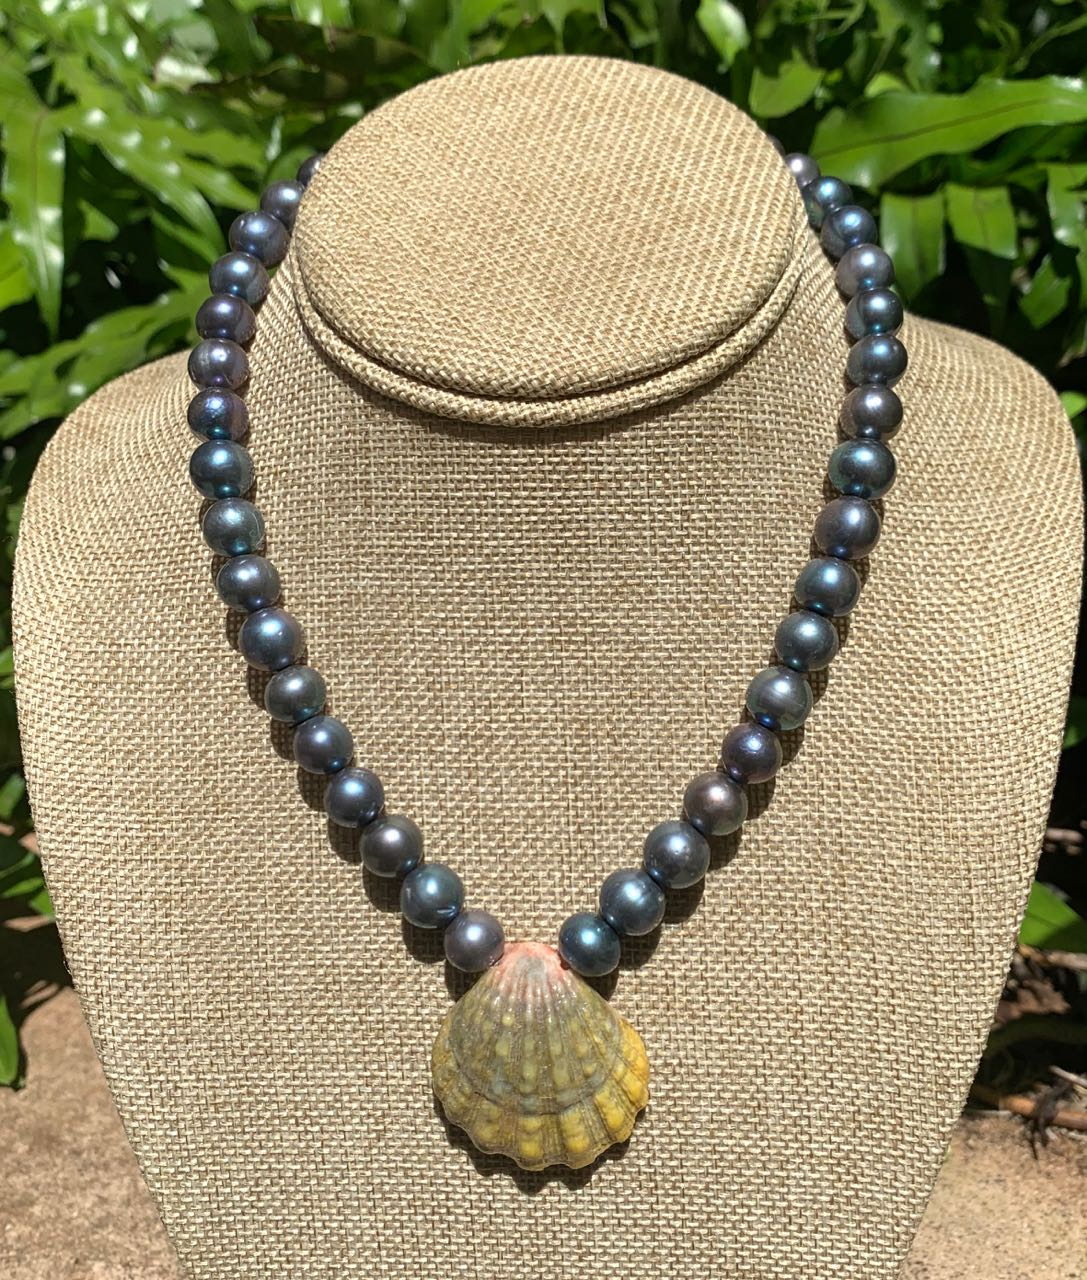 Malia Preza: Moonrise Shell and Peacock Freshwater Pearl Necklace